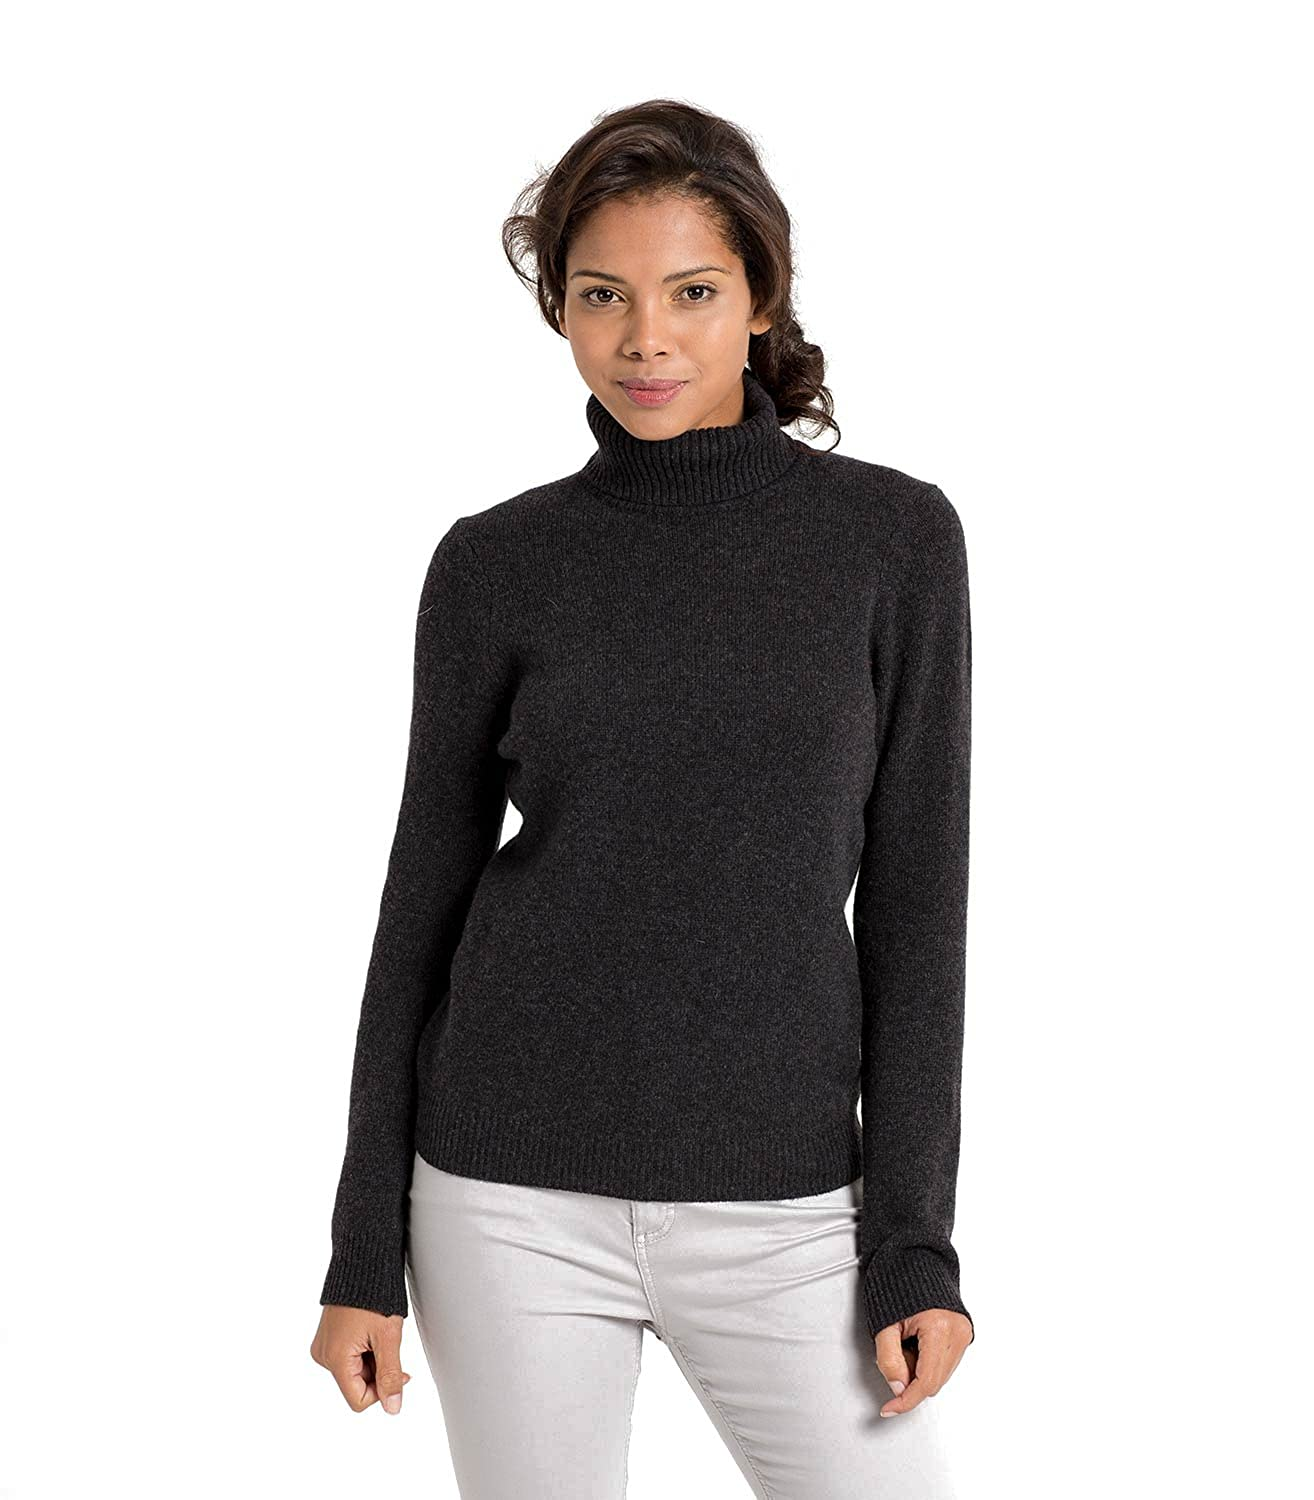 Woolovers Womens Lambswool Polo Neck Roll Neck Chunky Knitted Long Sleeve  Sweater 6-20  Amazon.co.uk  Clothing 830e80f4c